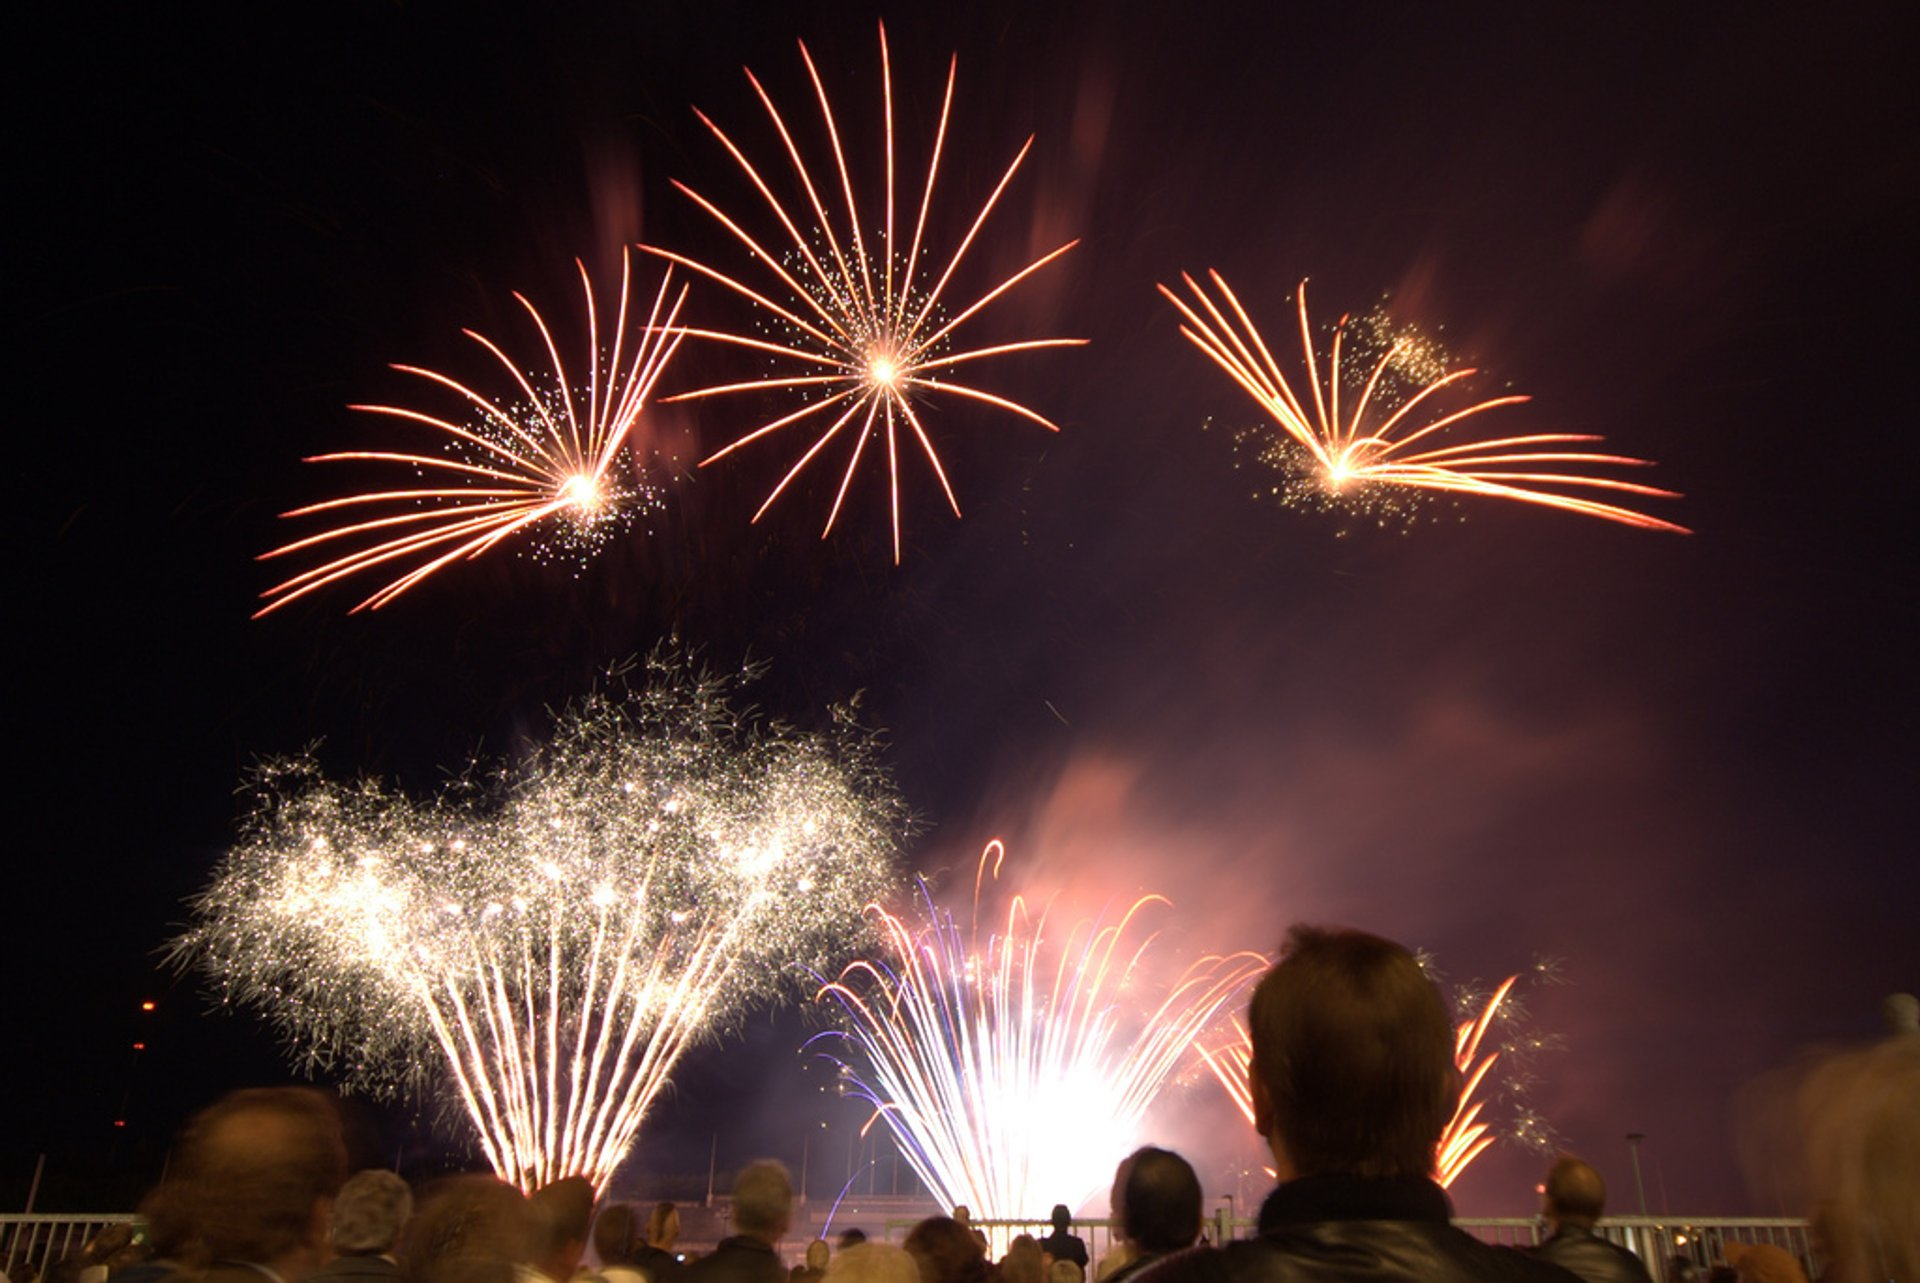 Pyronale Fireworks World Championship in Berlin 2020 - Best Time